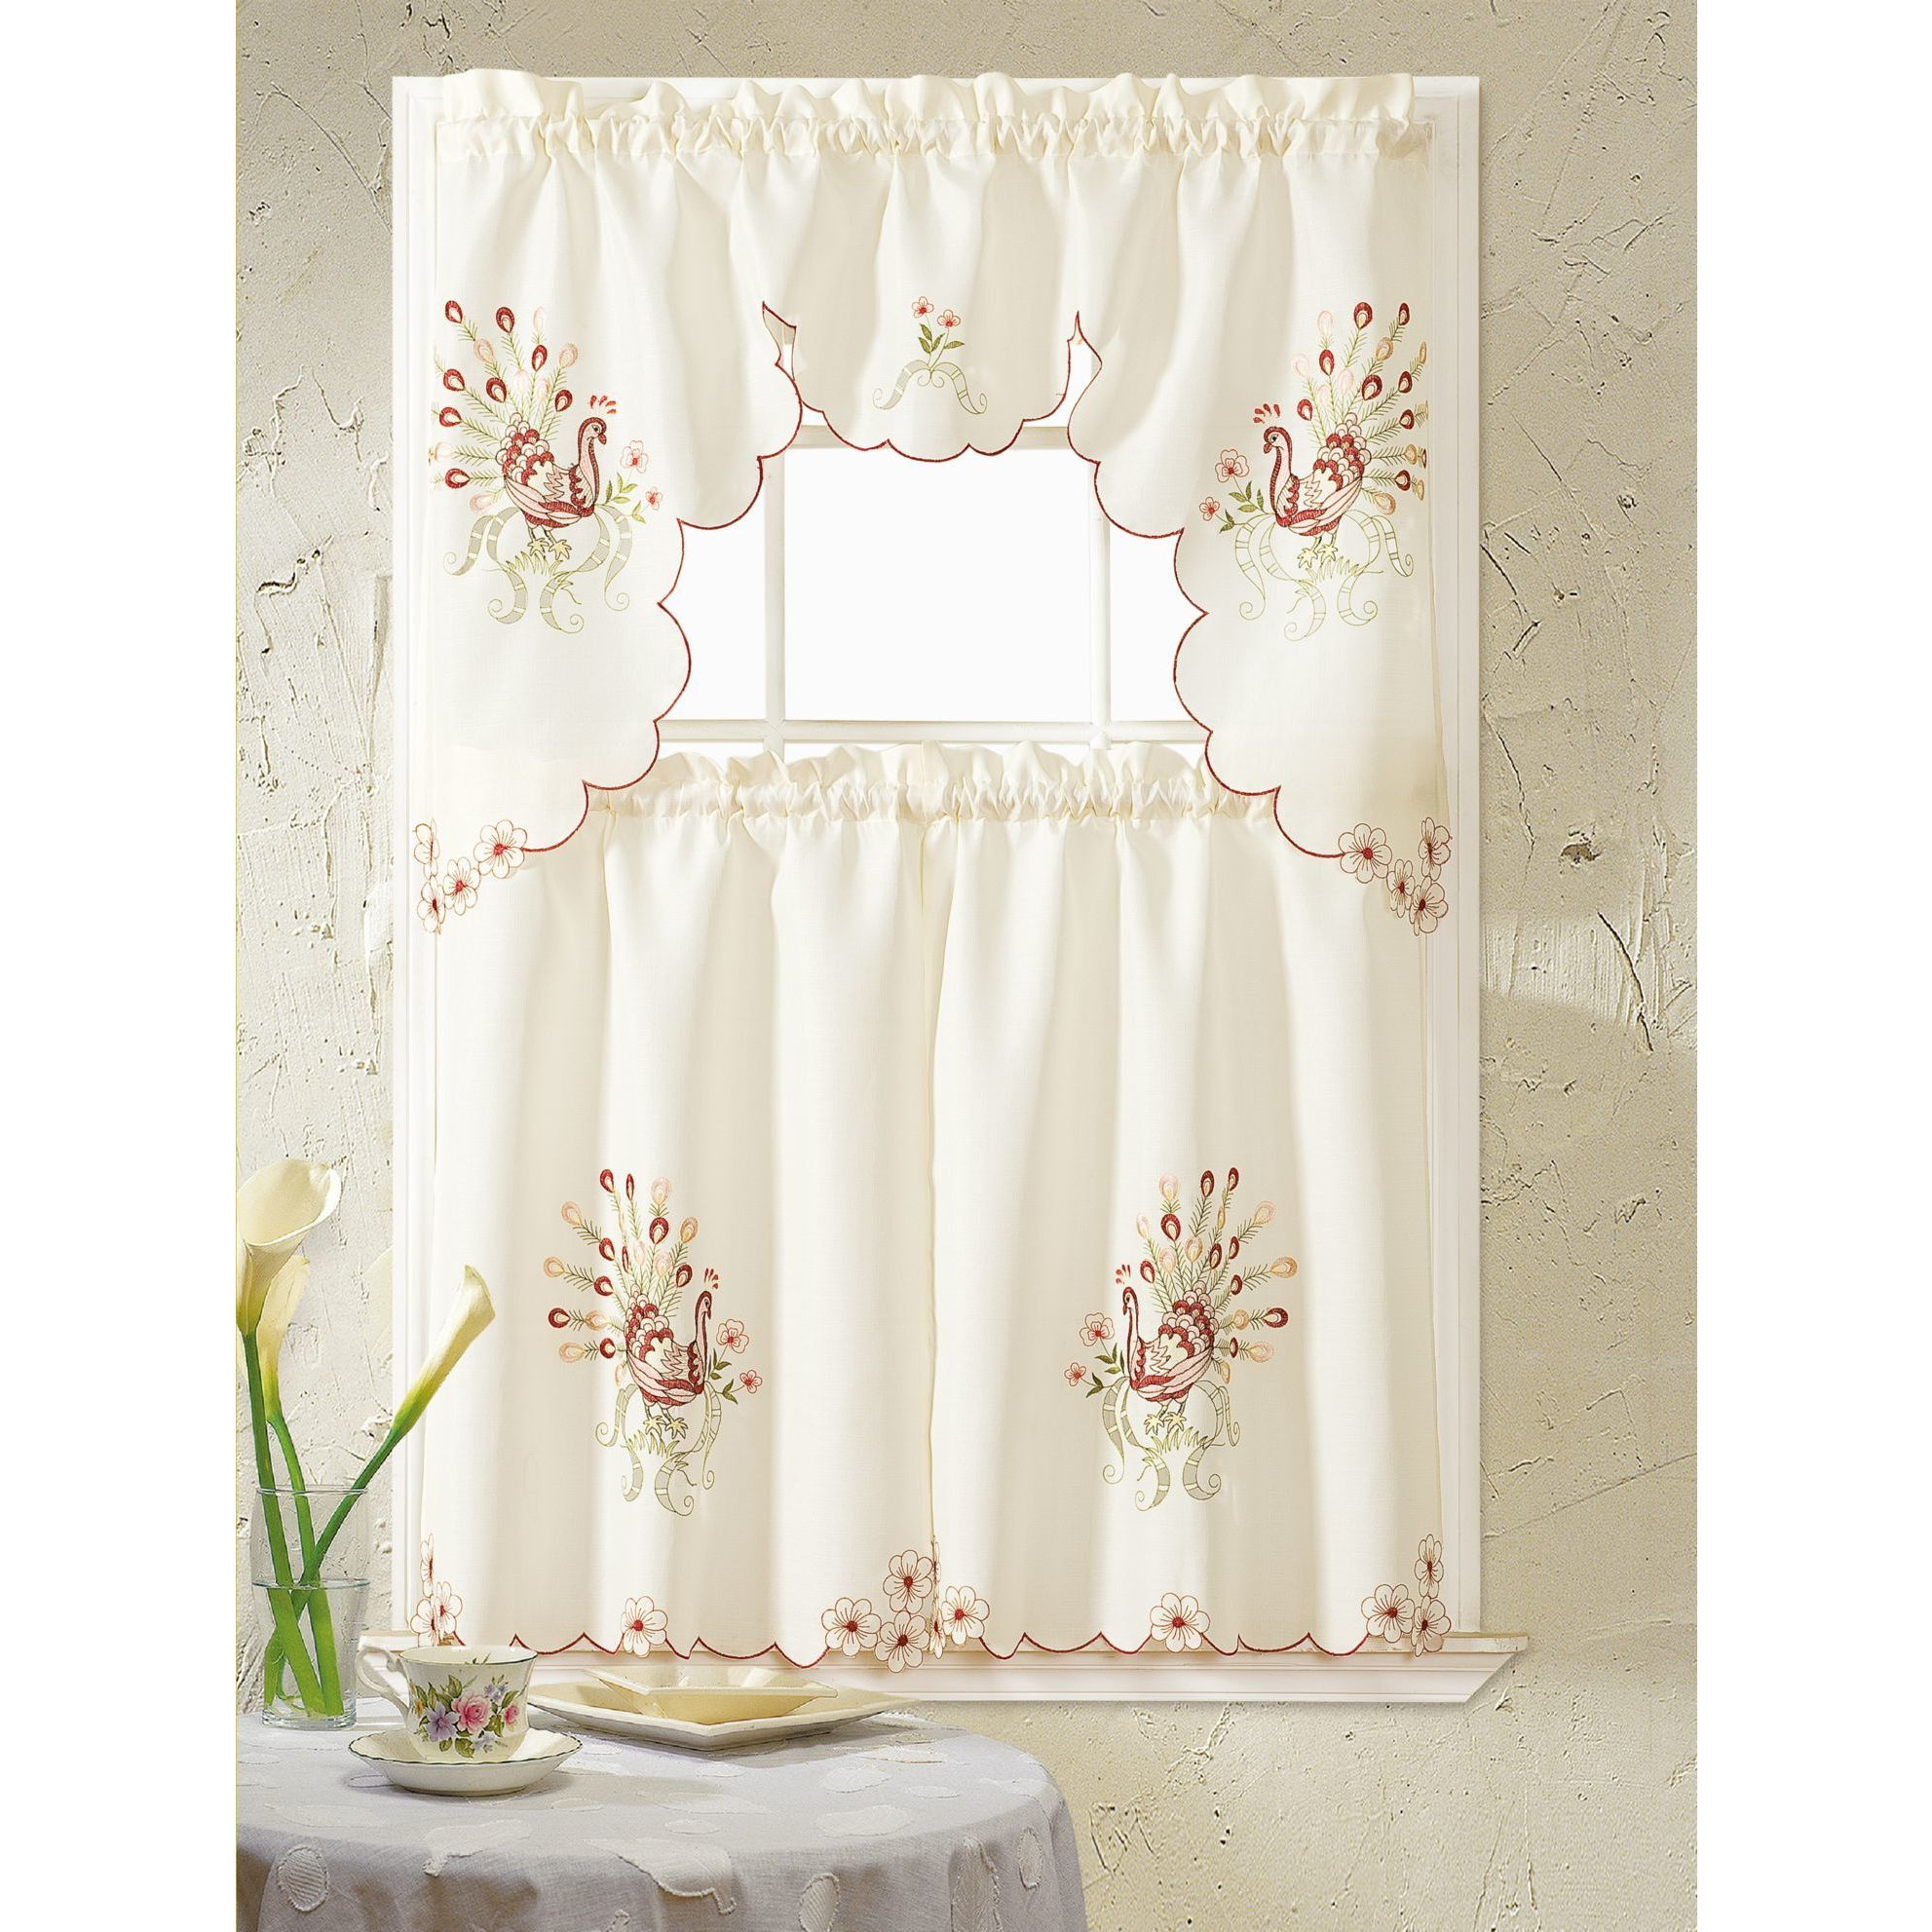 2021 Spring Daisy Tiered Curtain 3 Piece Sets Throughout Rt Designers Collection Peacock Embroidered Tiers And Valance Kitchen  Curtain Set (View 1 of 20)